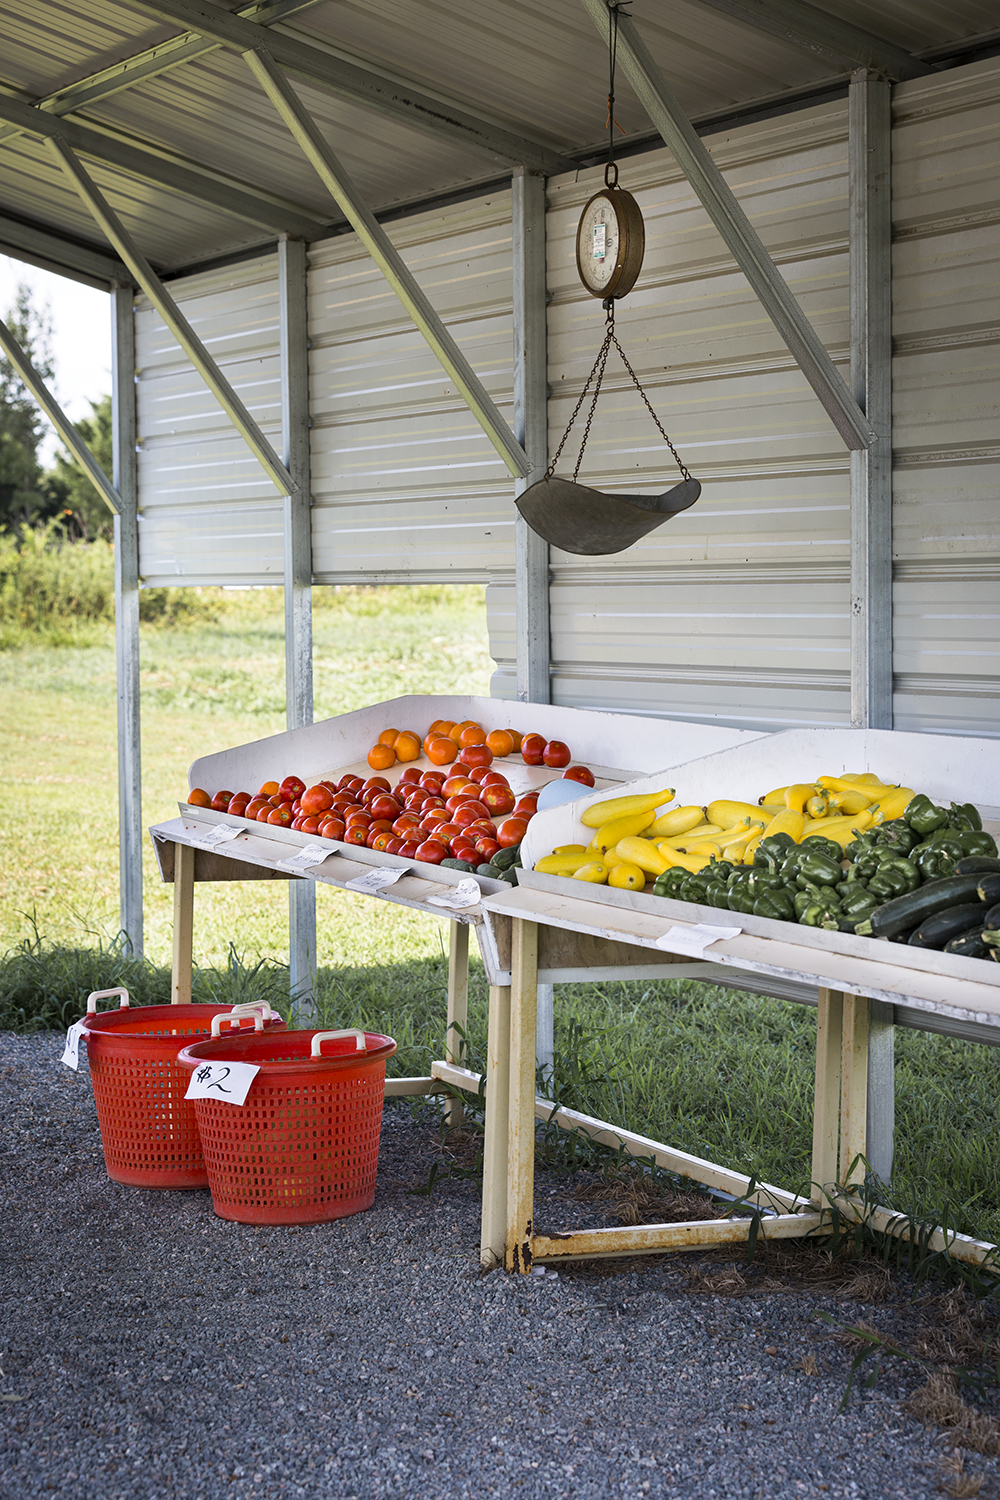 Grigsby_Produce_Route3_0012.jpg